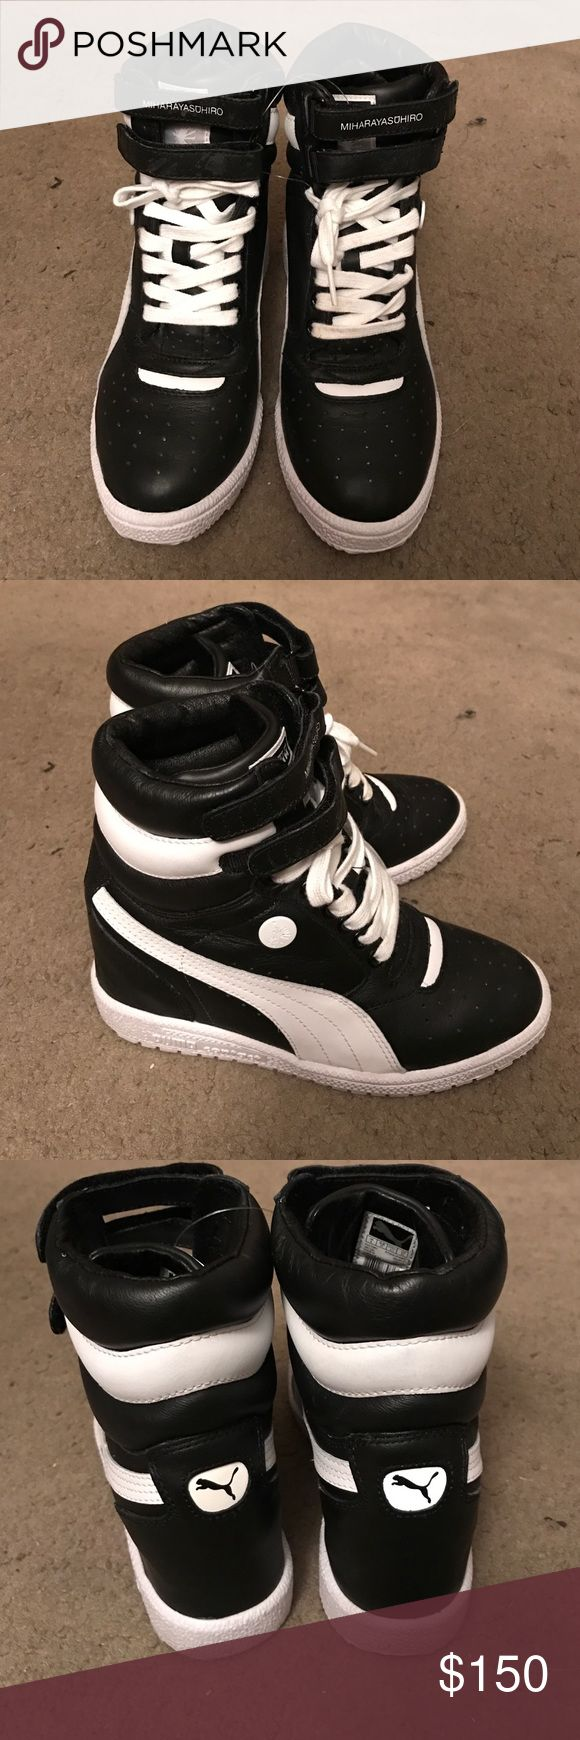 Puma contact wedge shoes Black and white wedge tennis shoes great condition barley worn at all does have some stains on shoe lace but might be able to wash them not that noticeable puma miharayasuhiro Shoes Sneakers